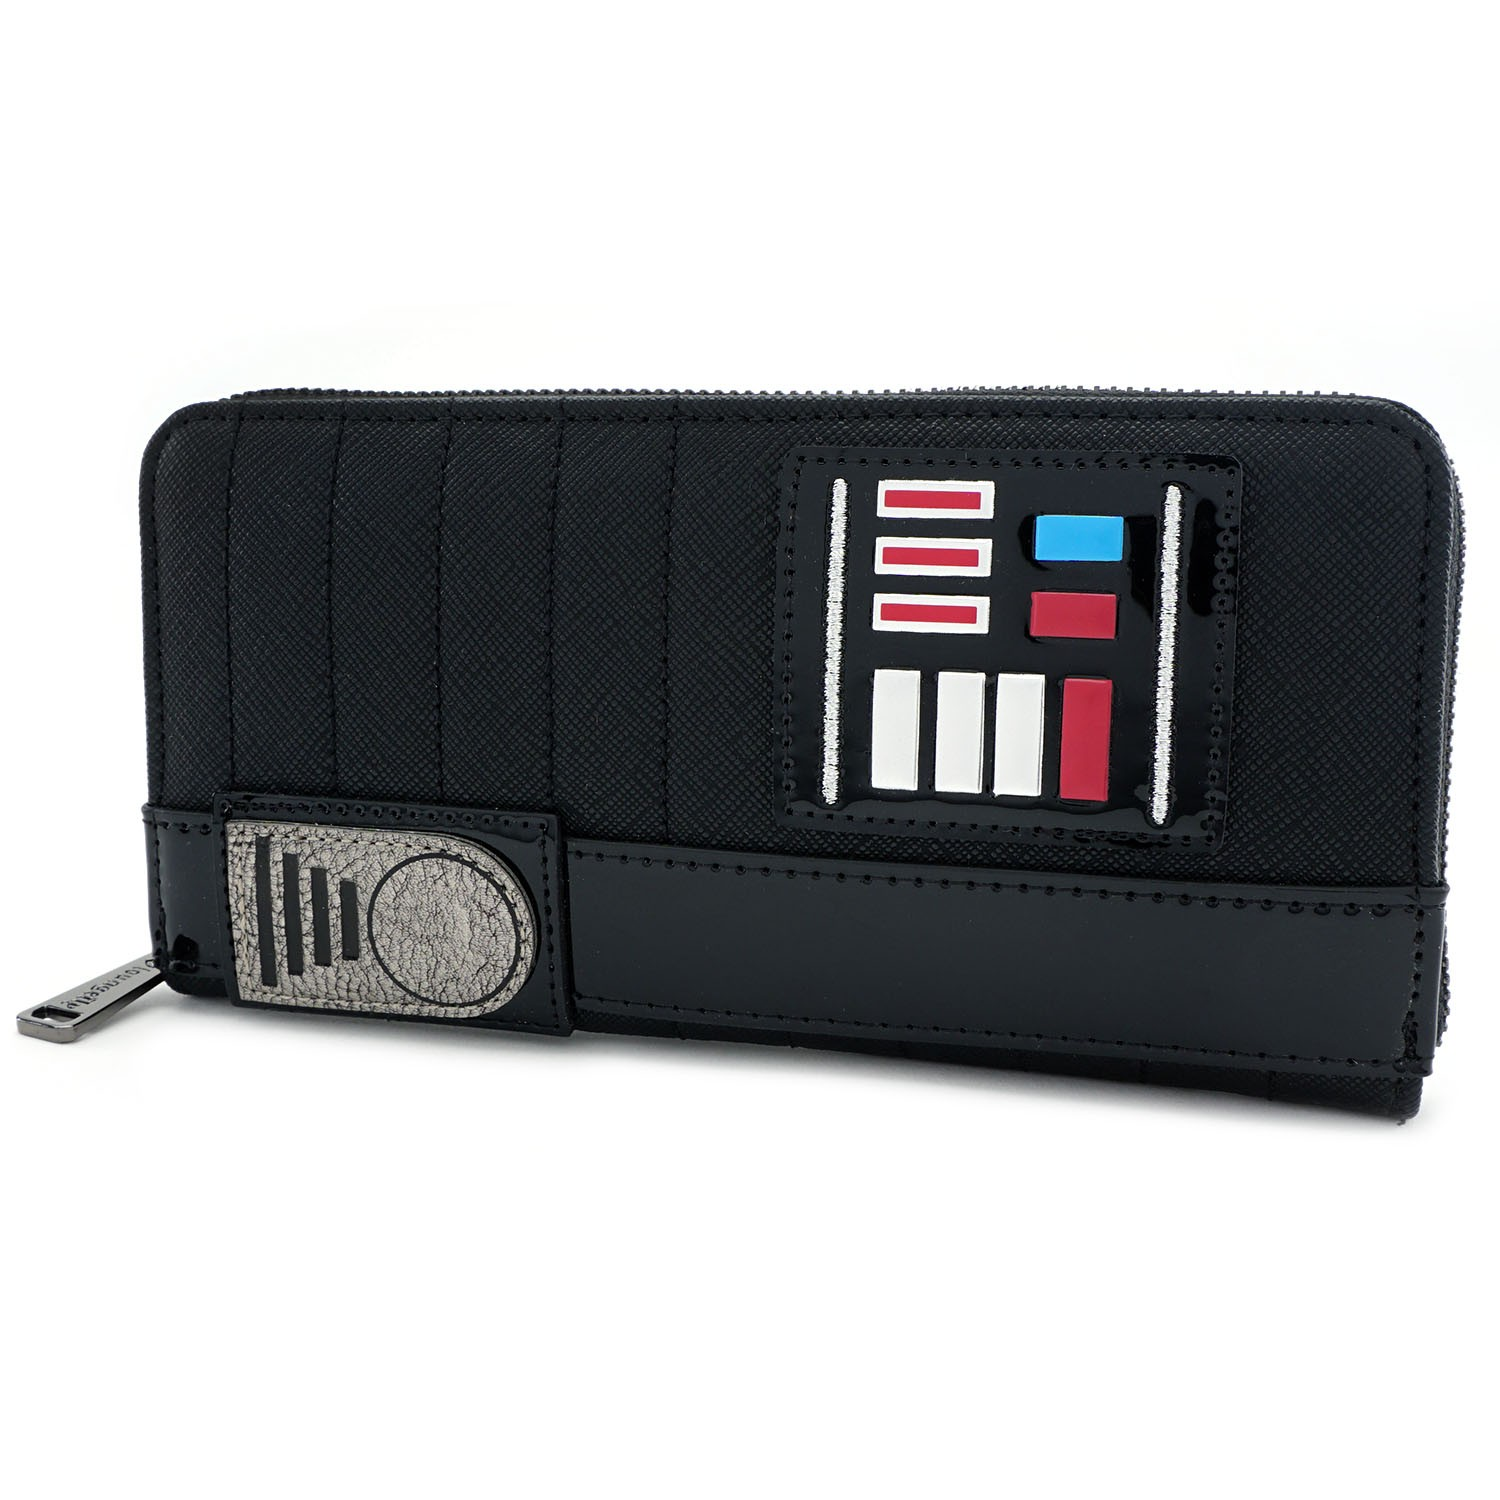 Loungefly x Star Wars Darth Vader Cosplay Zip-Up Wallet